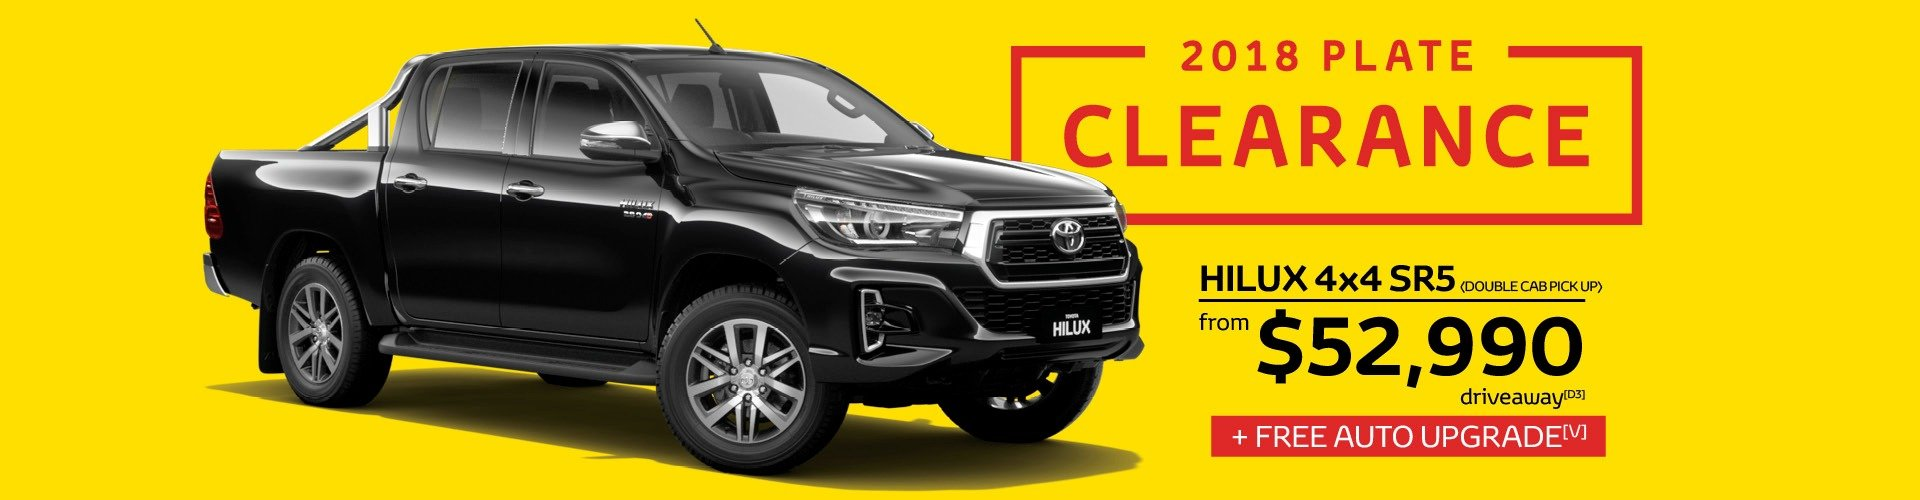 Waverley Toyota's 2018 Plate Clearance now on